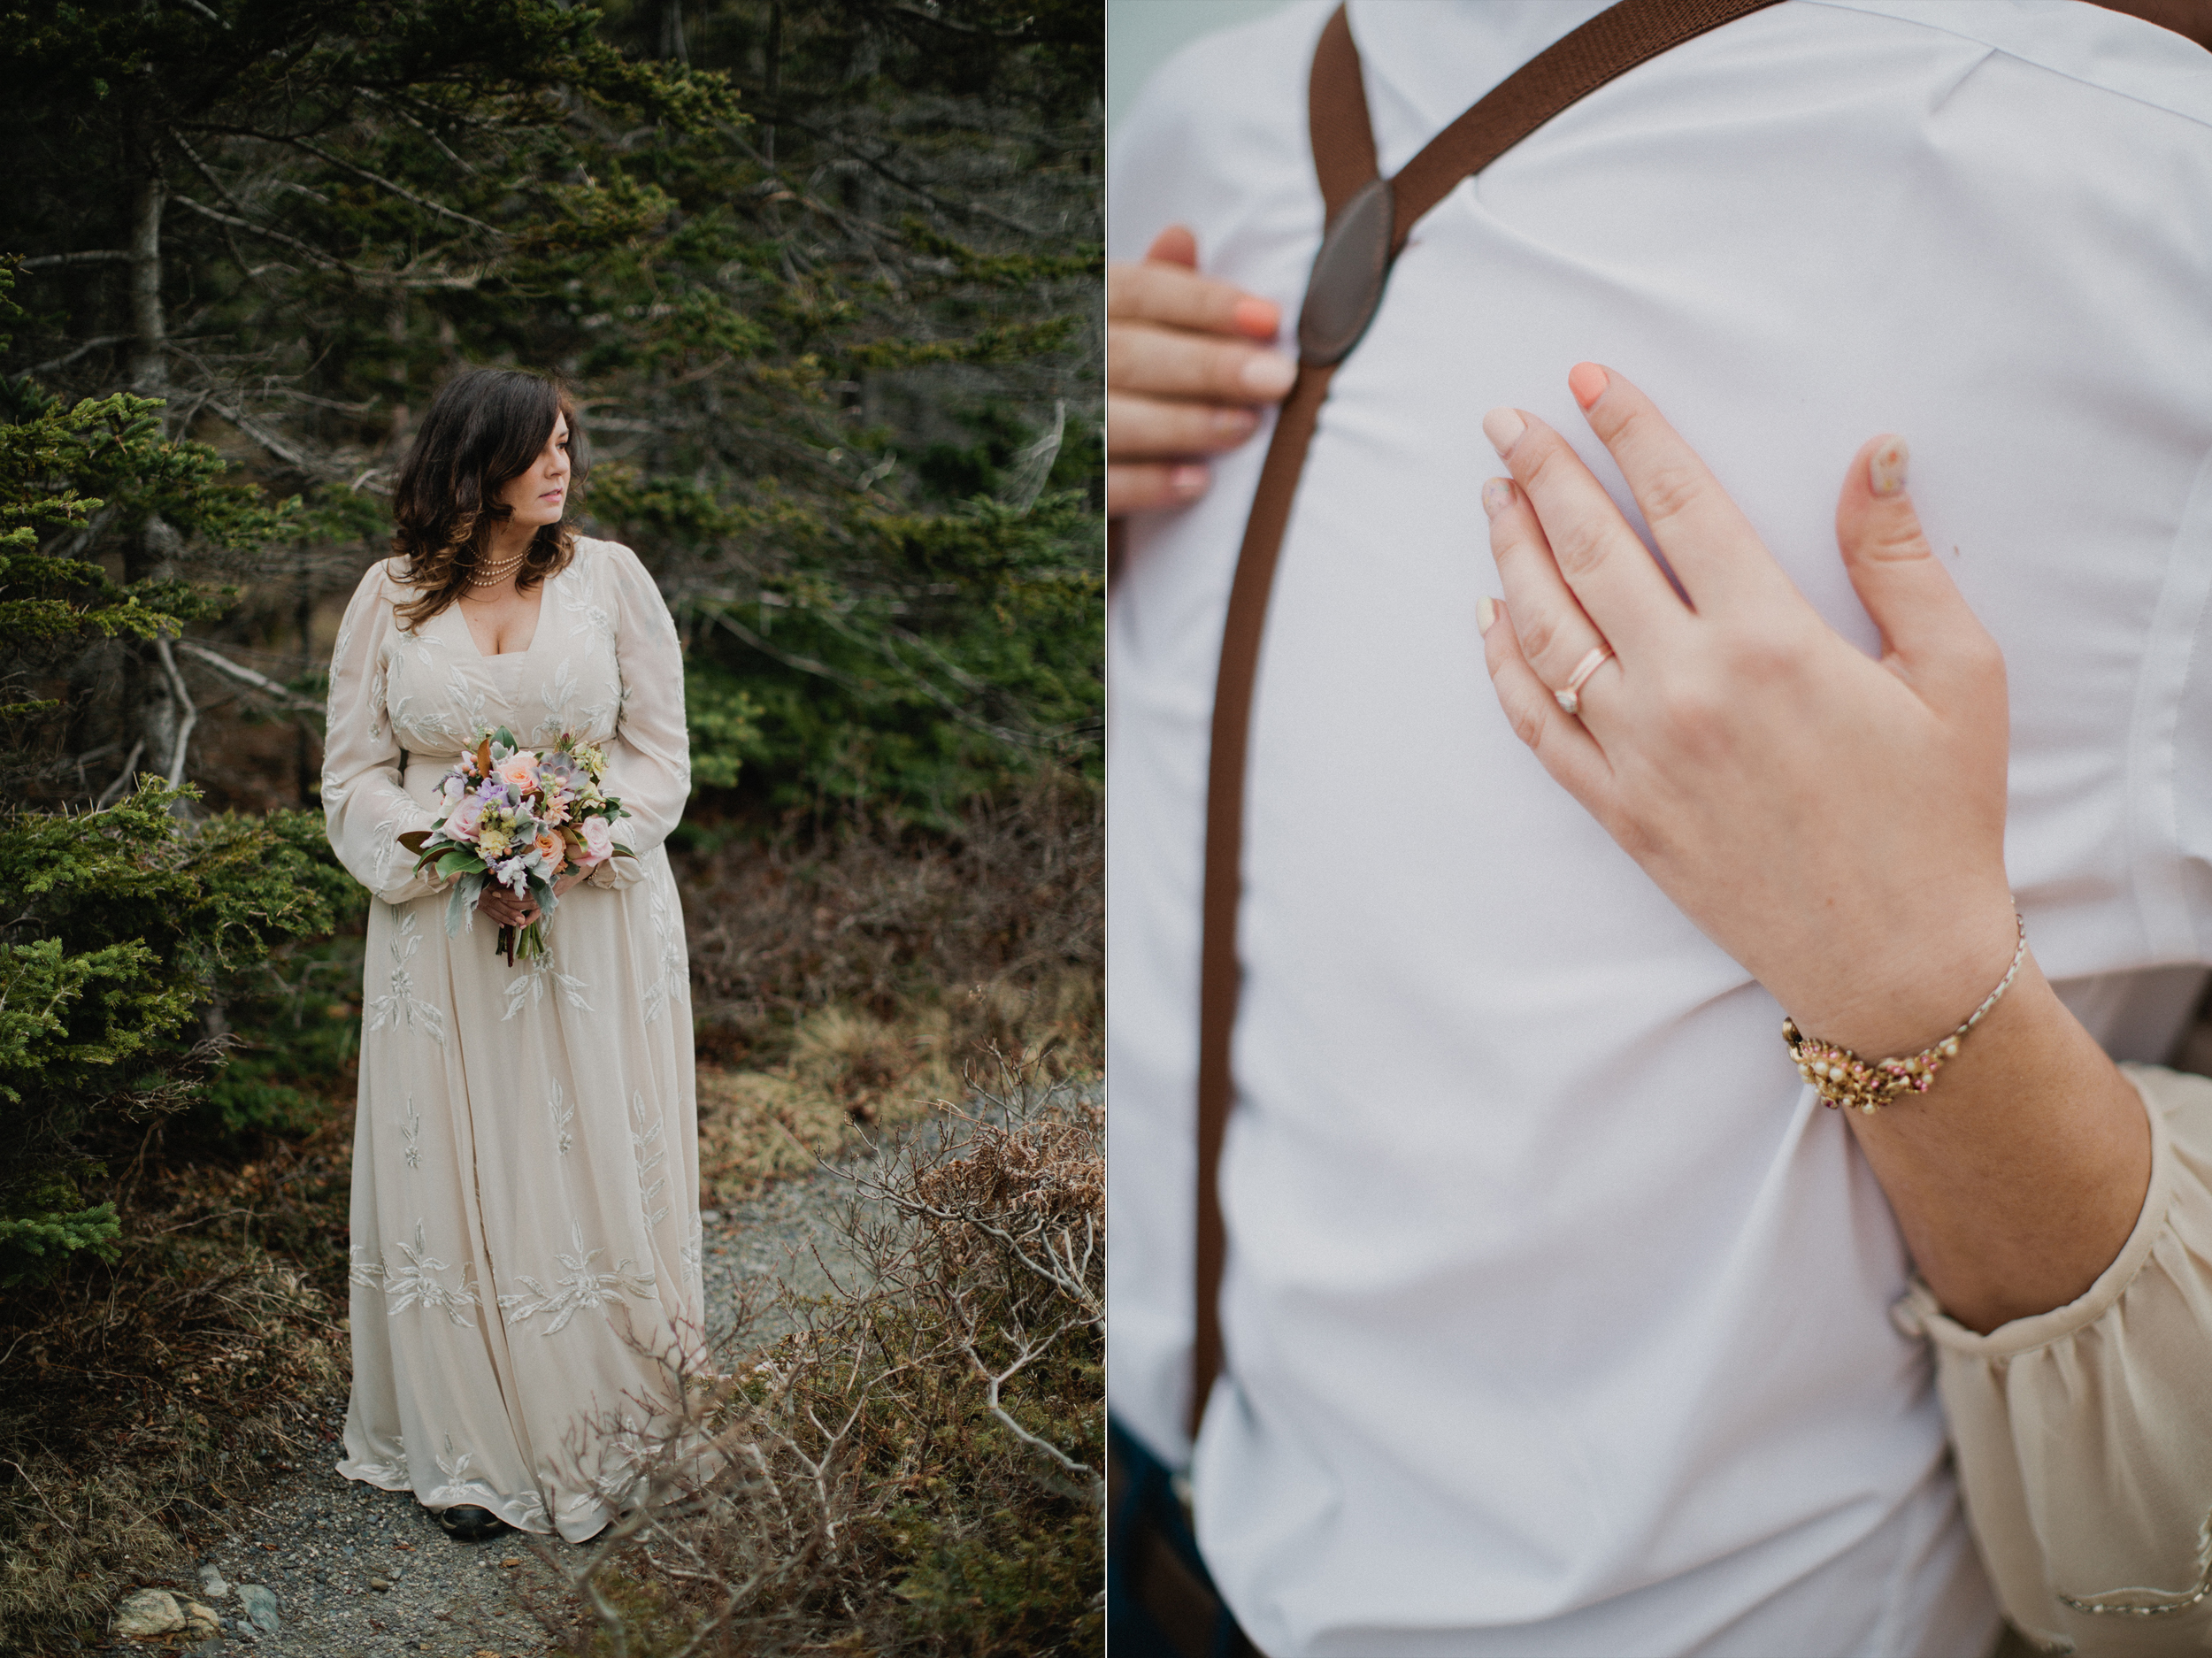 Acadia-Elopement-Photos-300h.jpg